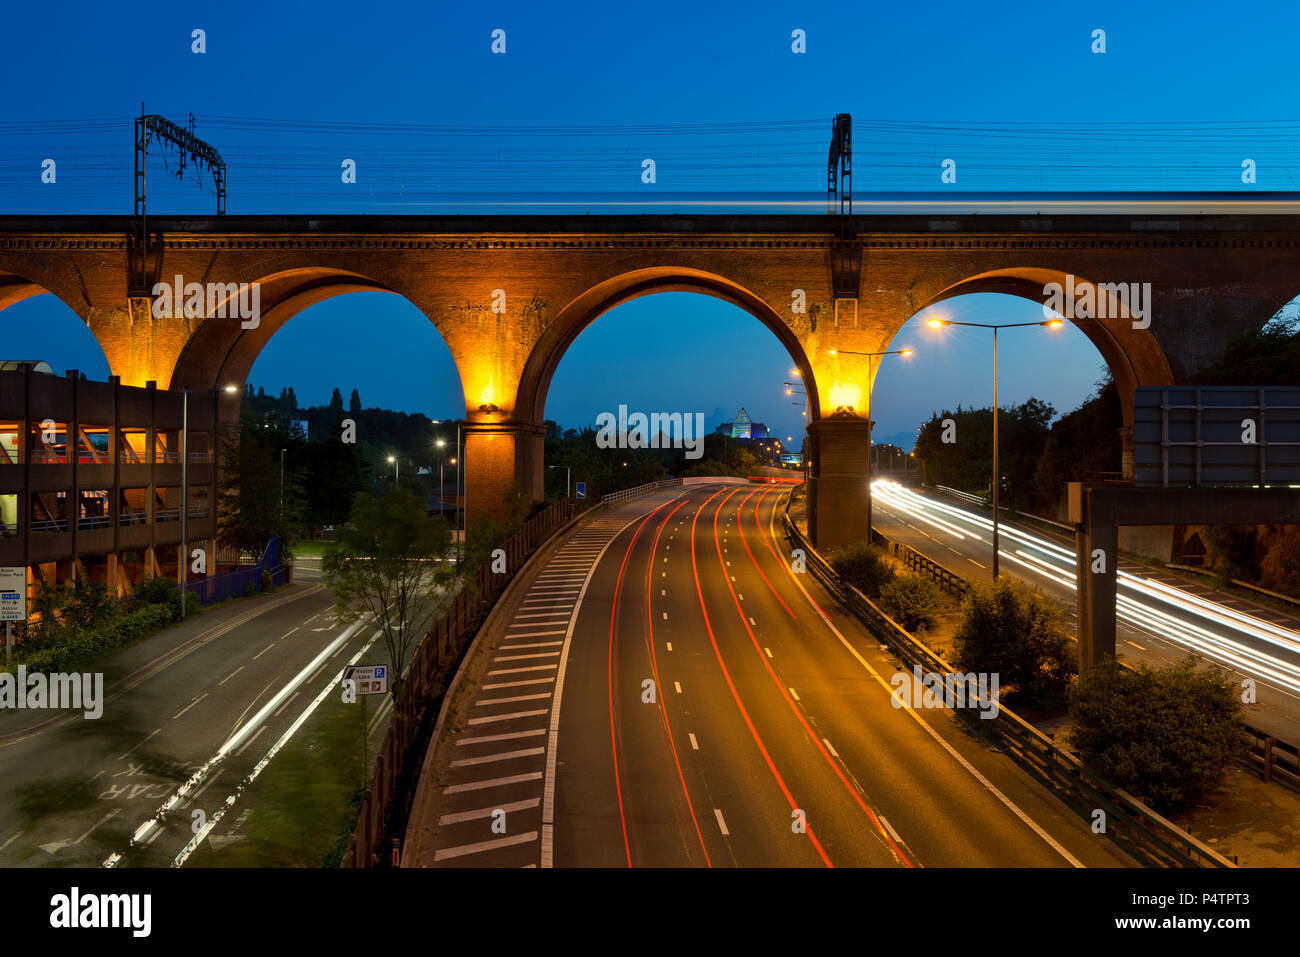 The M60 motorway runs below the Stockport railway viaduct as a train passes at night. - Stock Image